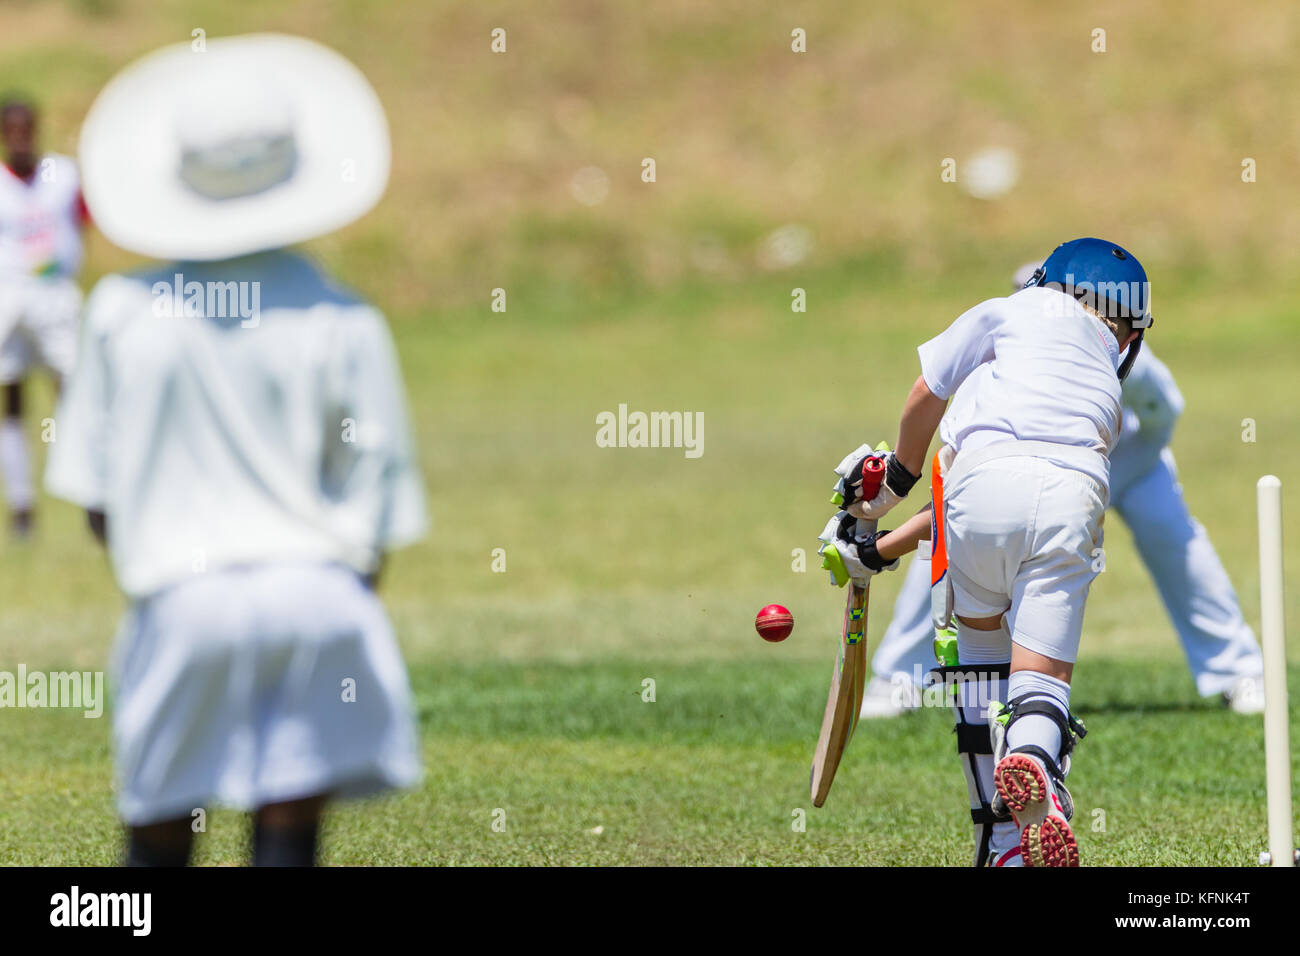 Cricket game juniors players Fielder Batsman unidentified action abstract. - Stock Image